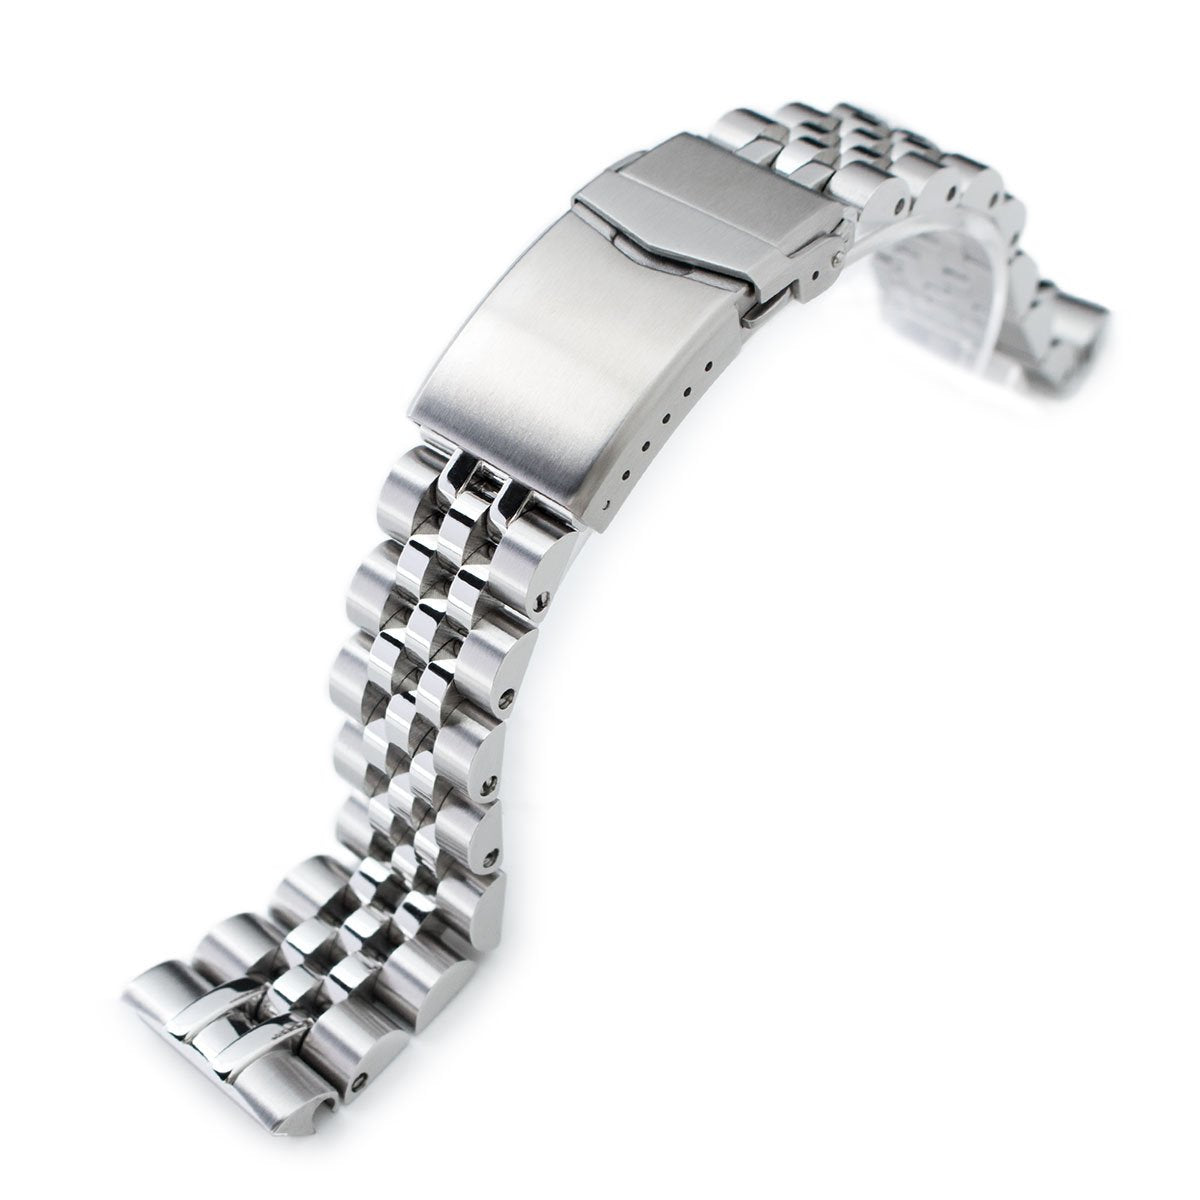 22mm Angus-J Louis 316L Stainless Steel Watch Bracelet for Seiko Turtle SRP777 Brushed Polished V-Clasp Strapcode Watch Bands